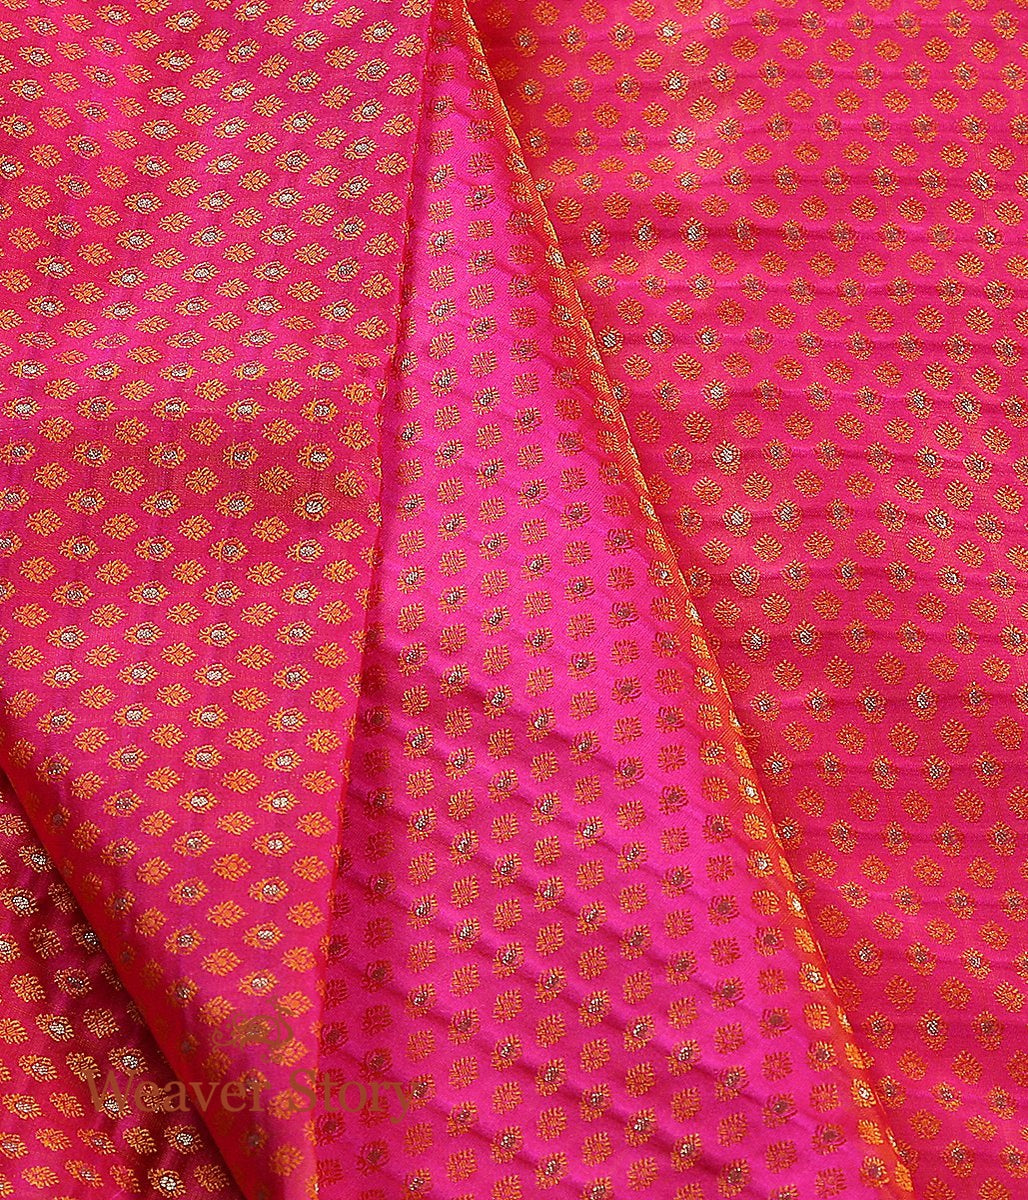 Handwoven Pink and Orange Dual Tone Tanchoi Fabric